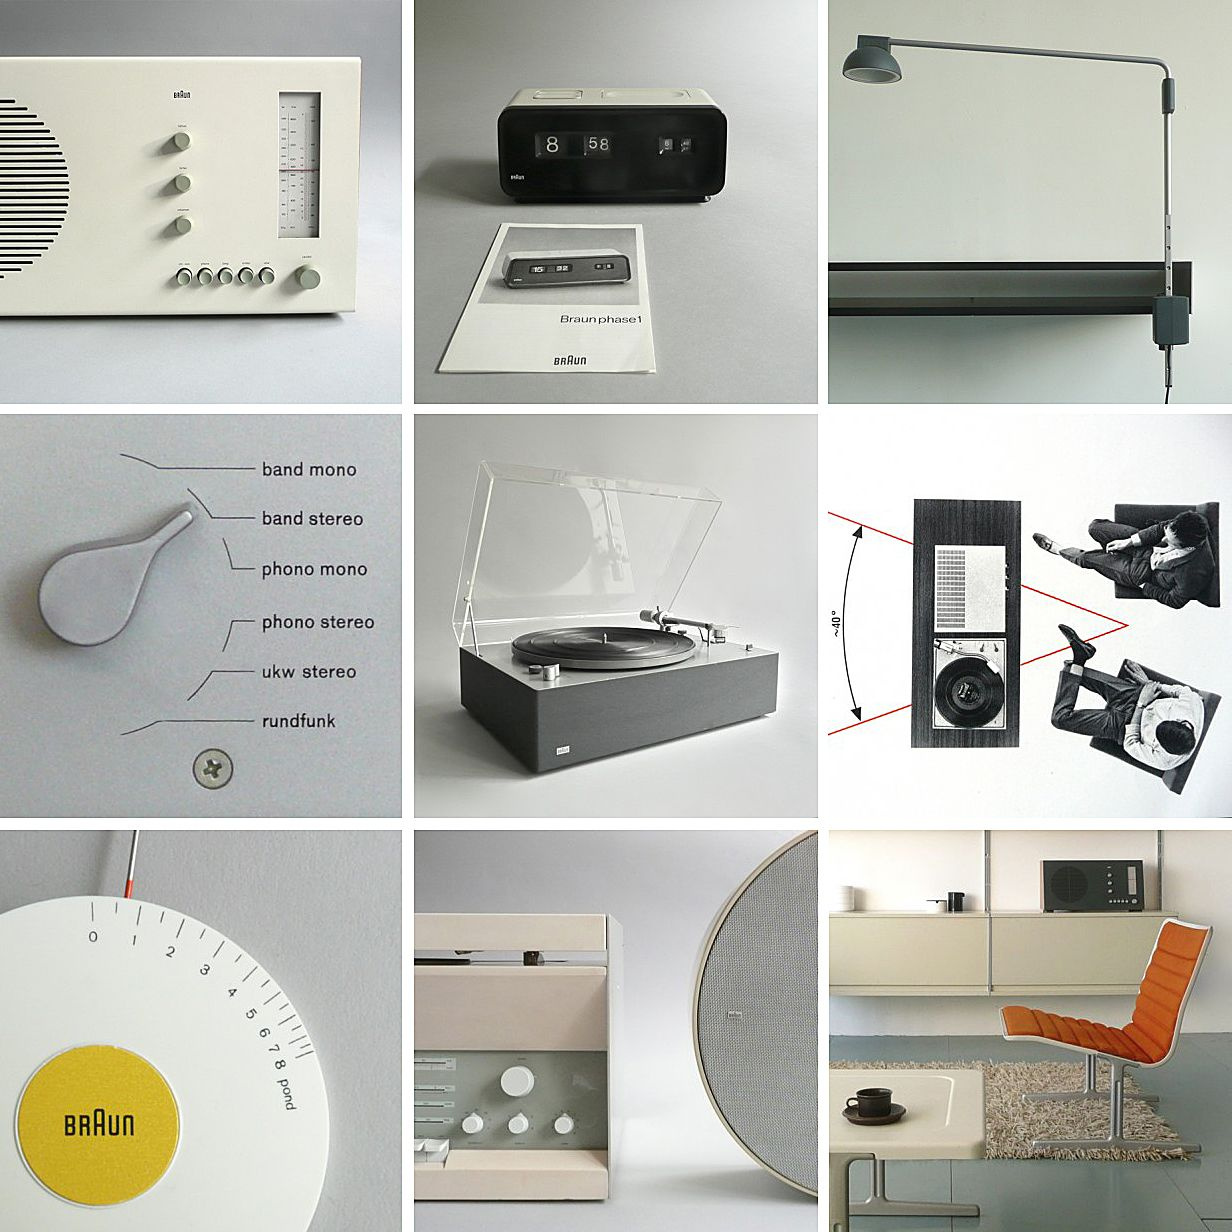 dieter rams in stuff we trust pinterest hochschule f r gestaltung ulm und produktdesign. Black Bedroom Furniture Sets. Home Design Ideas